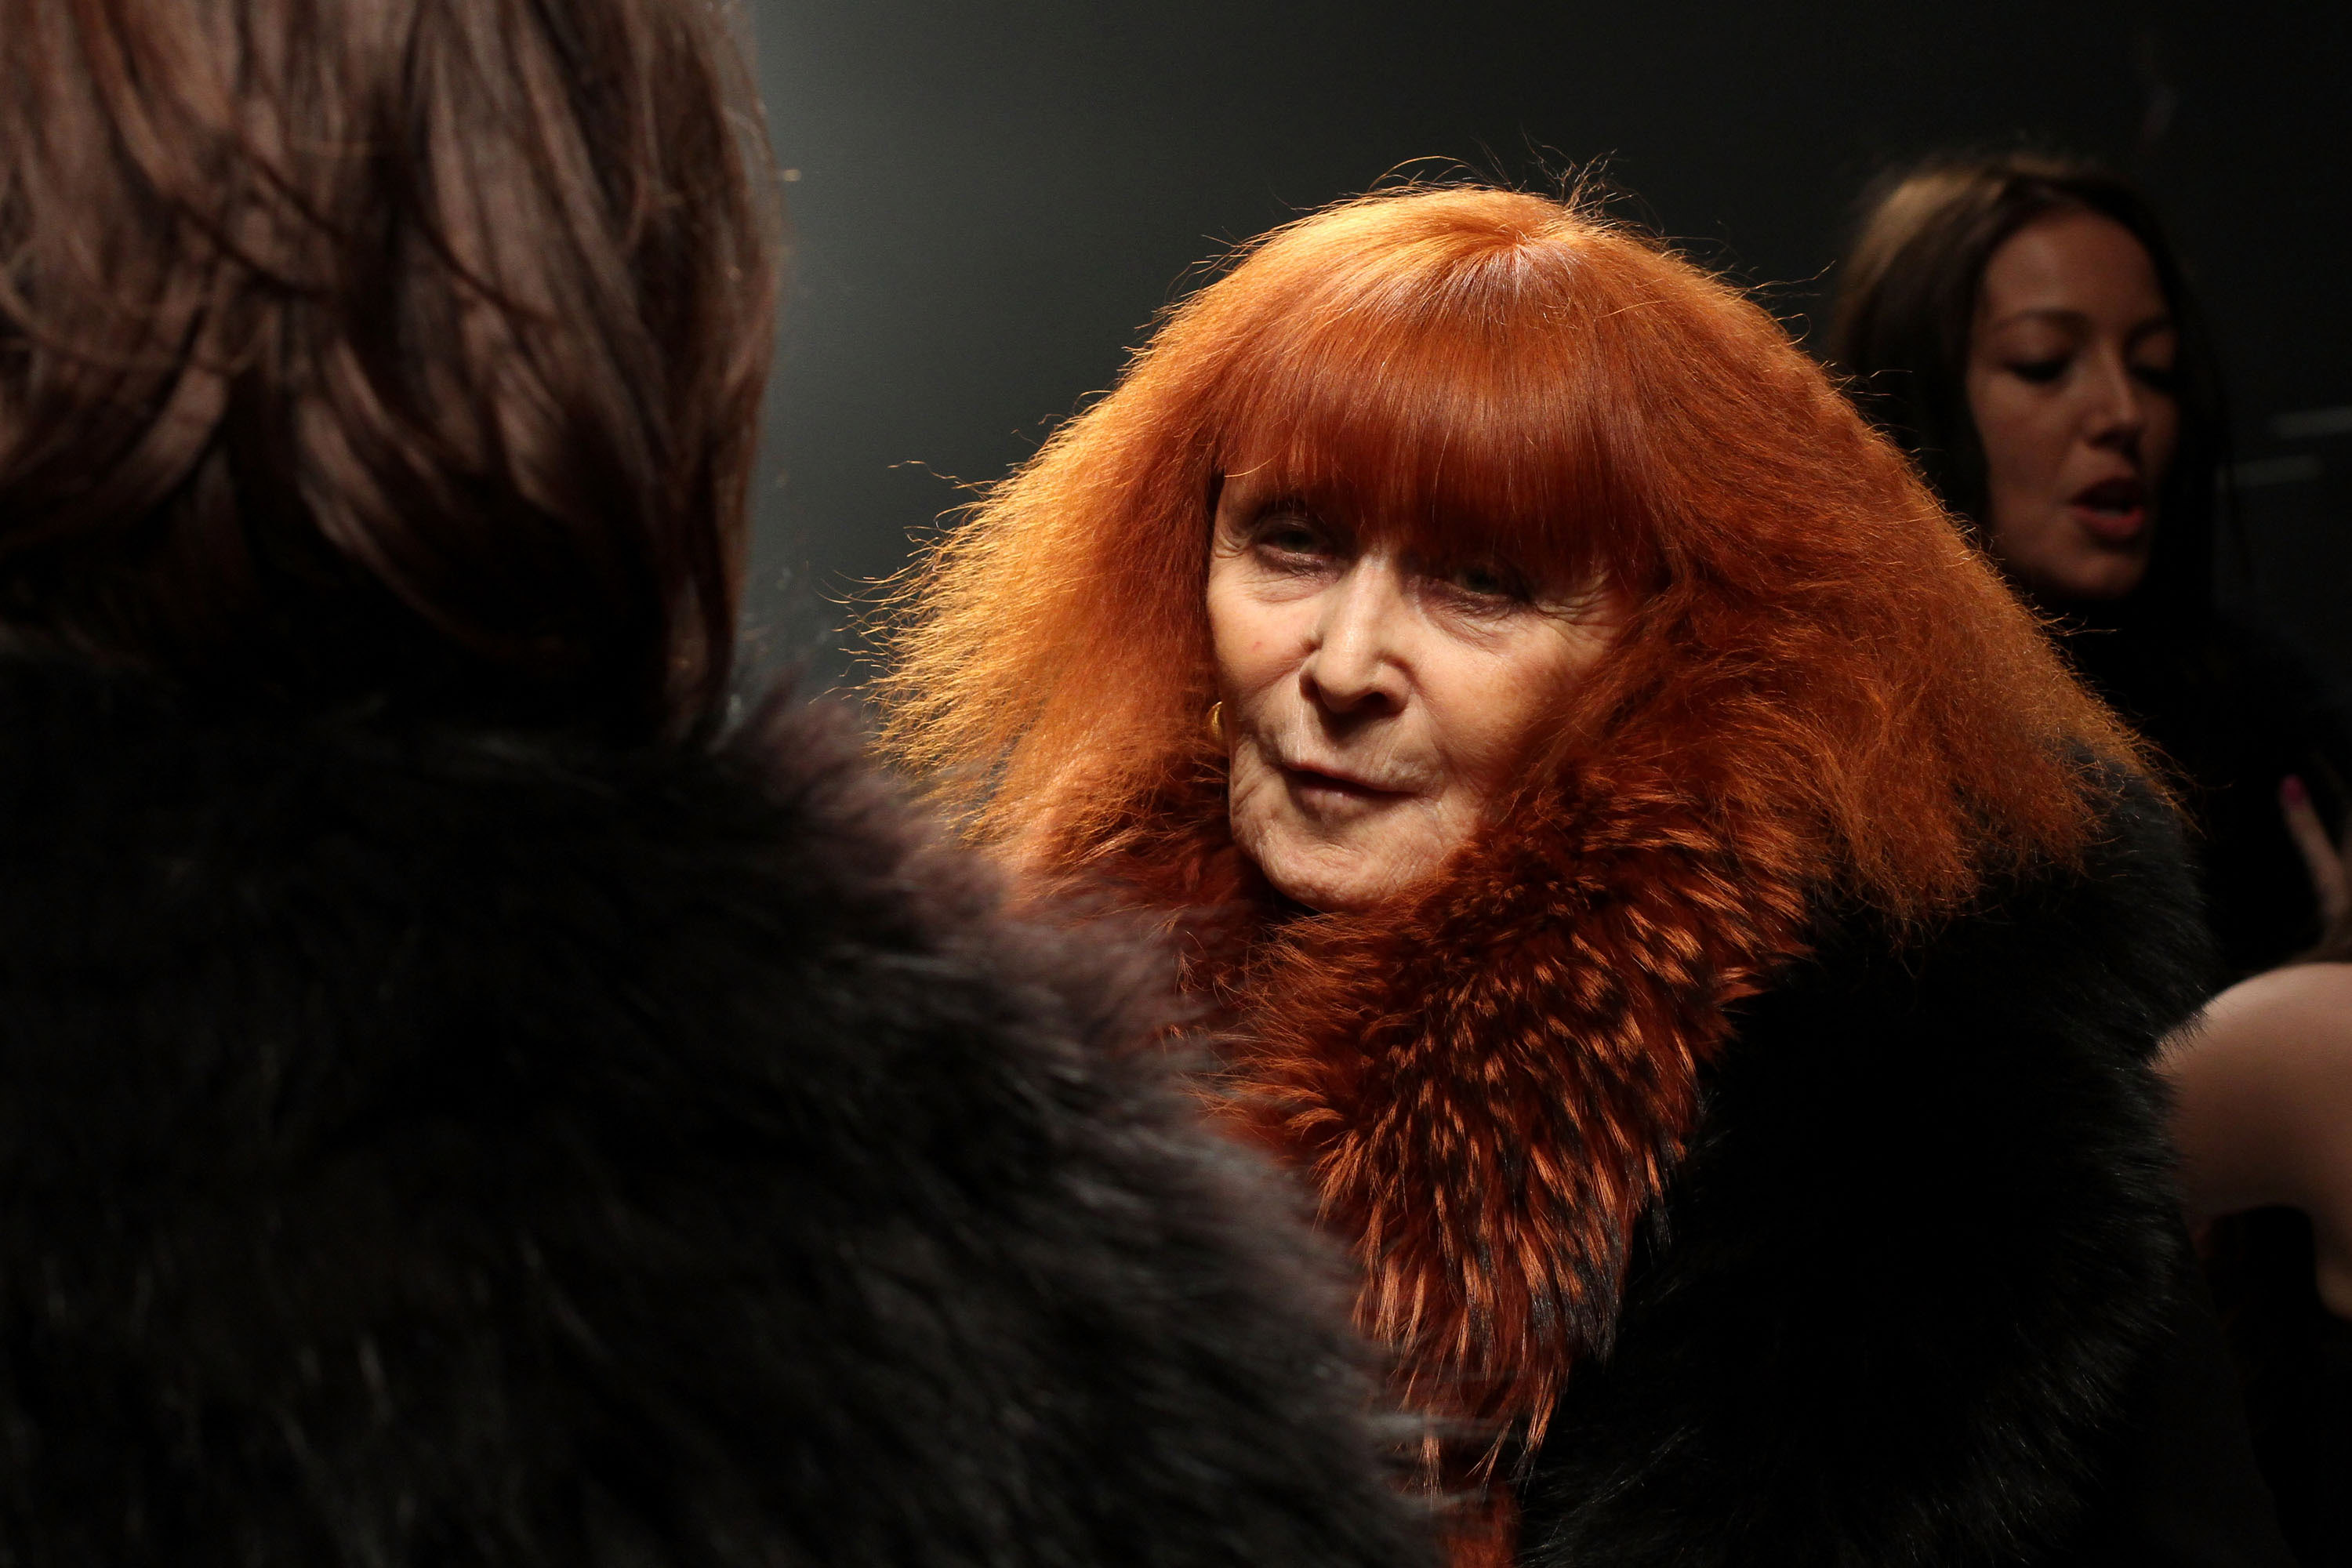 PARIS - MARCH 07:  Sonia Rykiel poses backstage after the Sonia Rykiel Ready to Wear show as part of the Paris Womenswear Fas